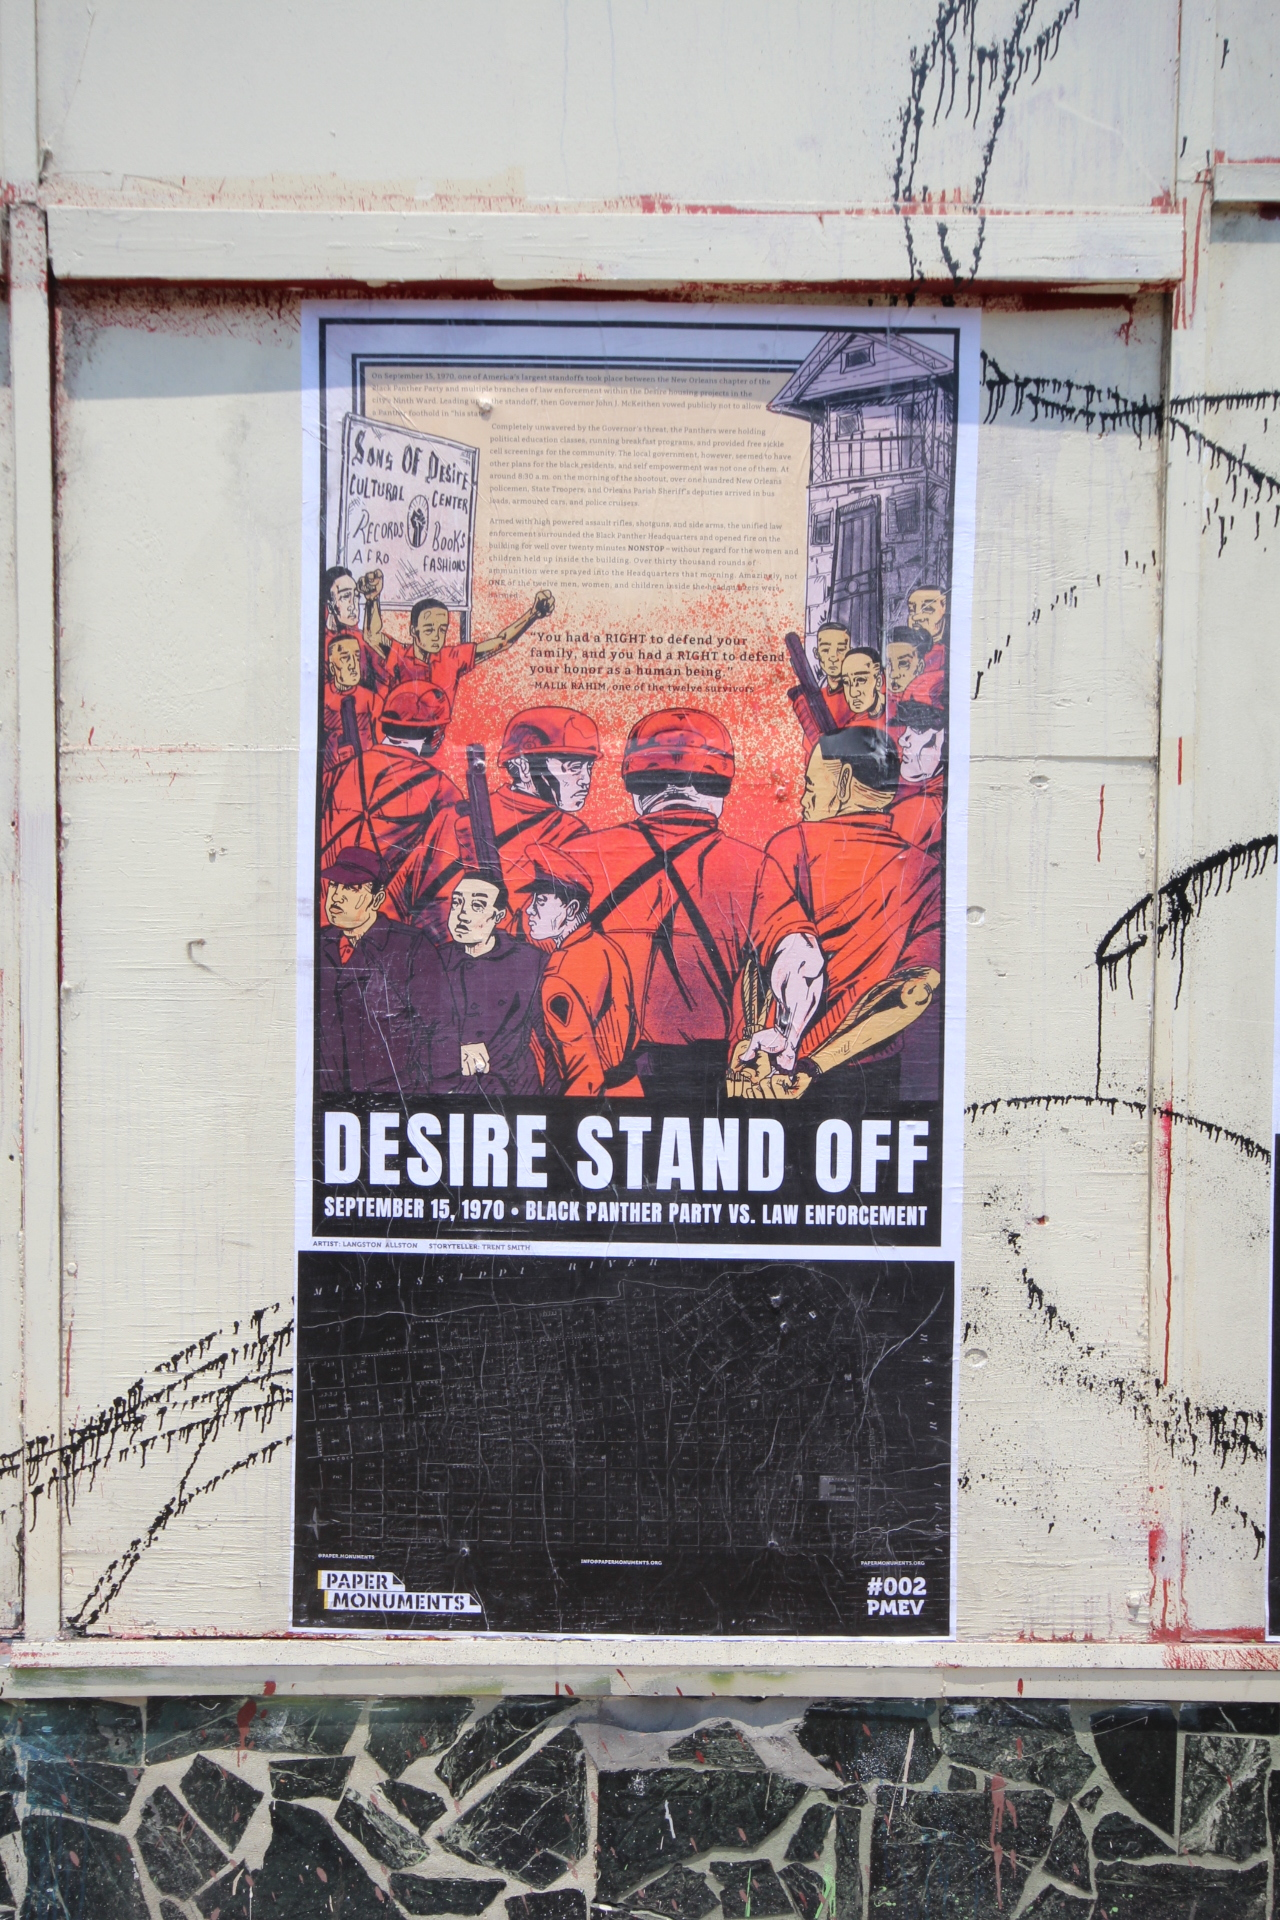 PMEV#002 Standoff in Desire installed at the Rampart Street site.